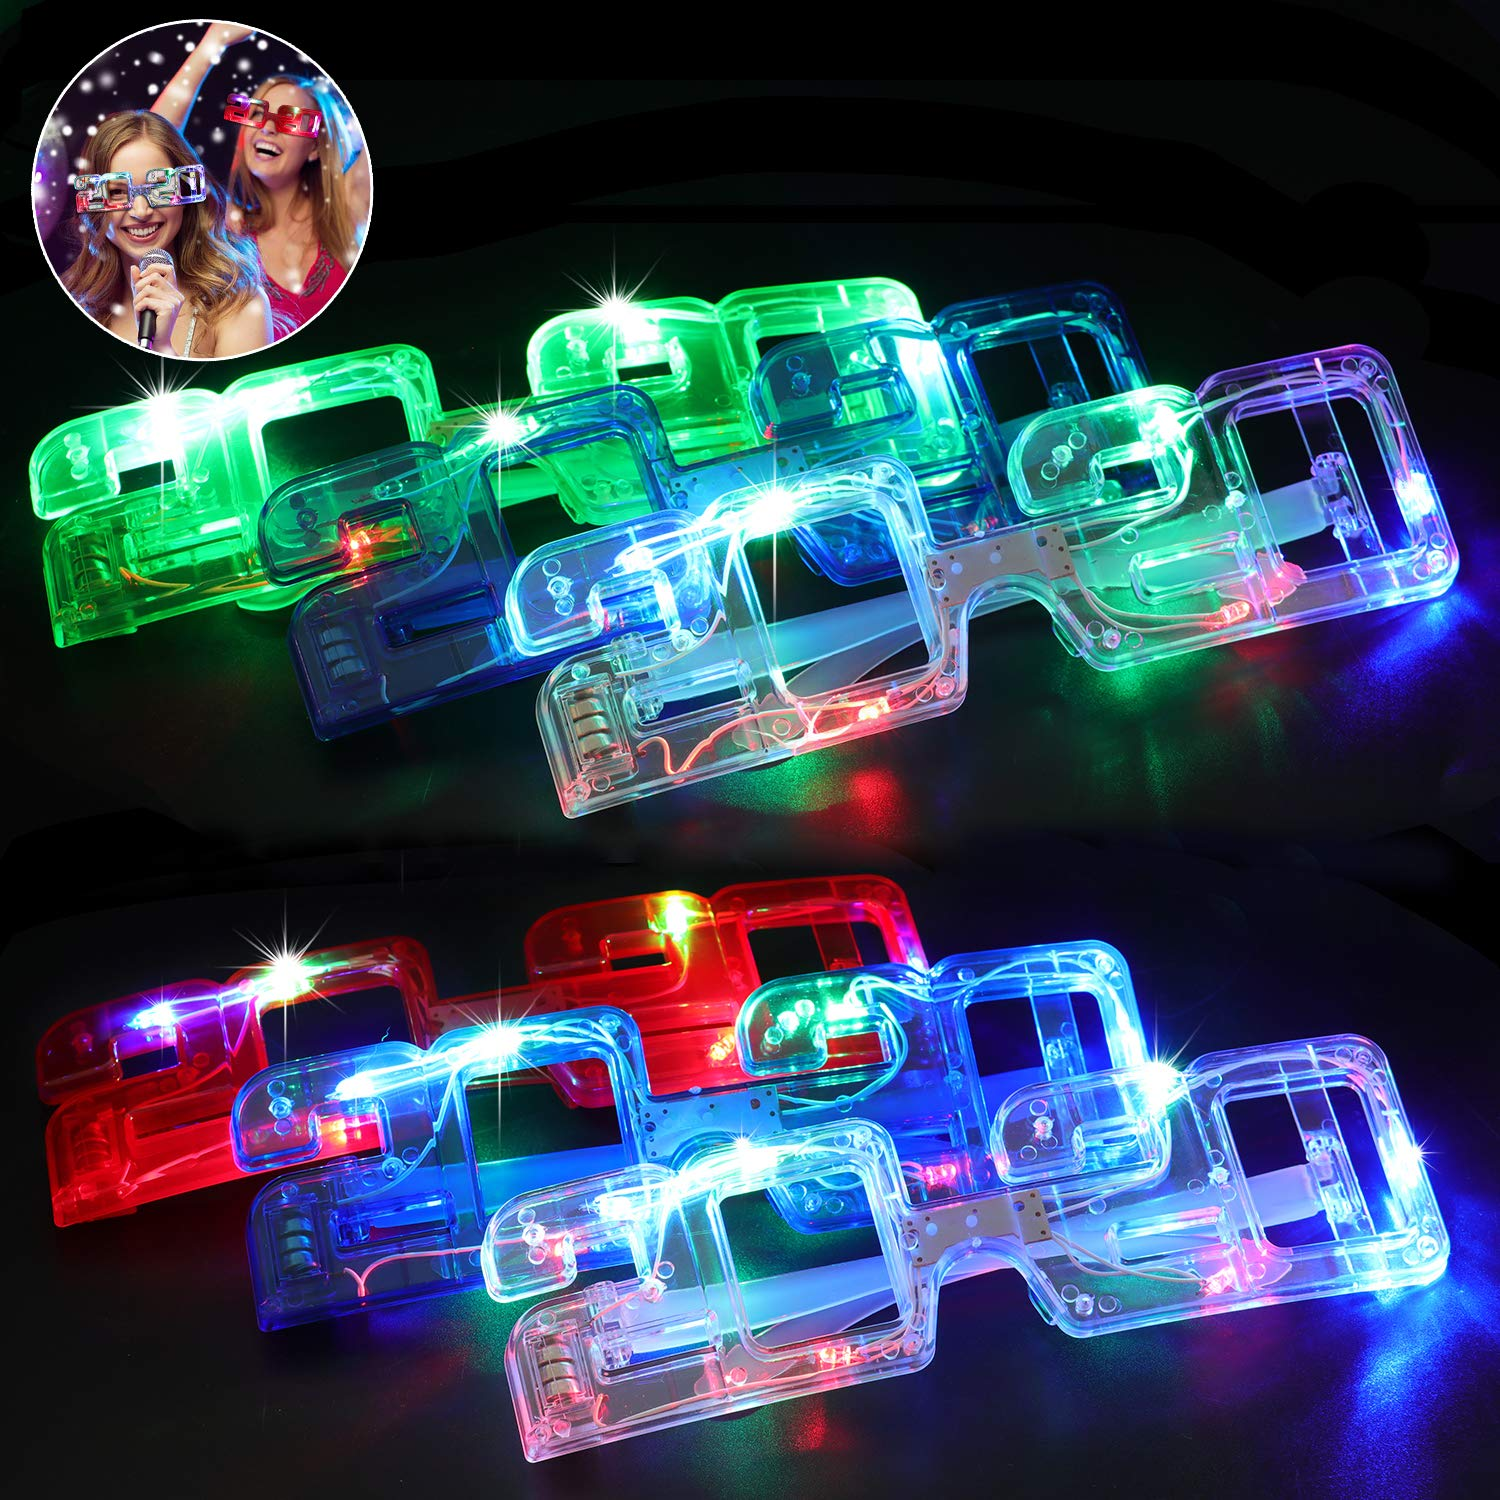 Fansport 6 Pairs LED Glasses 2020 Light up Glasses Glowing Glasses for New Year Party